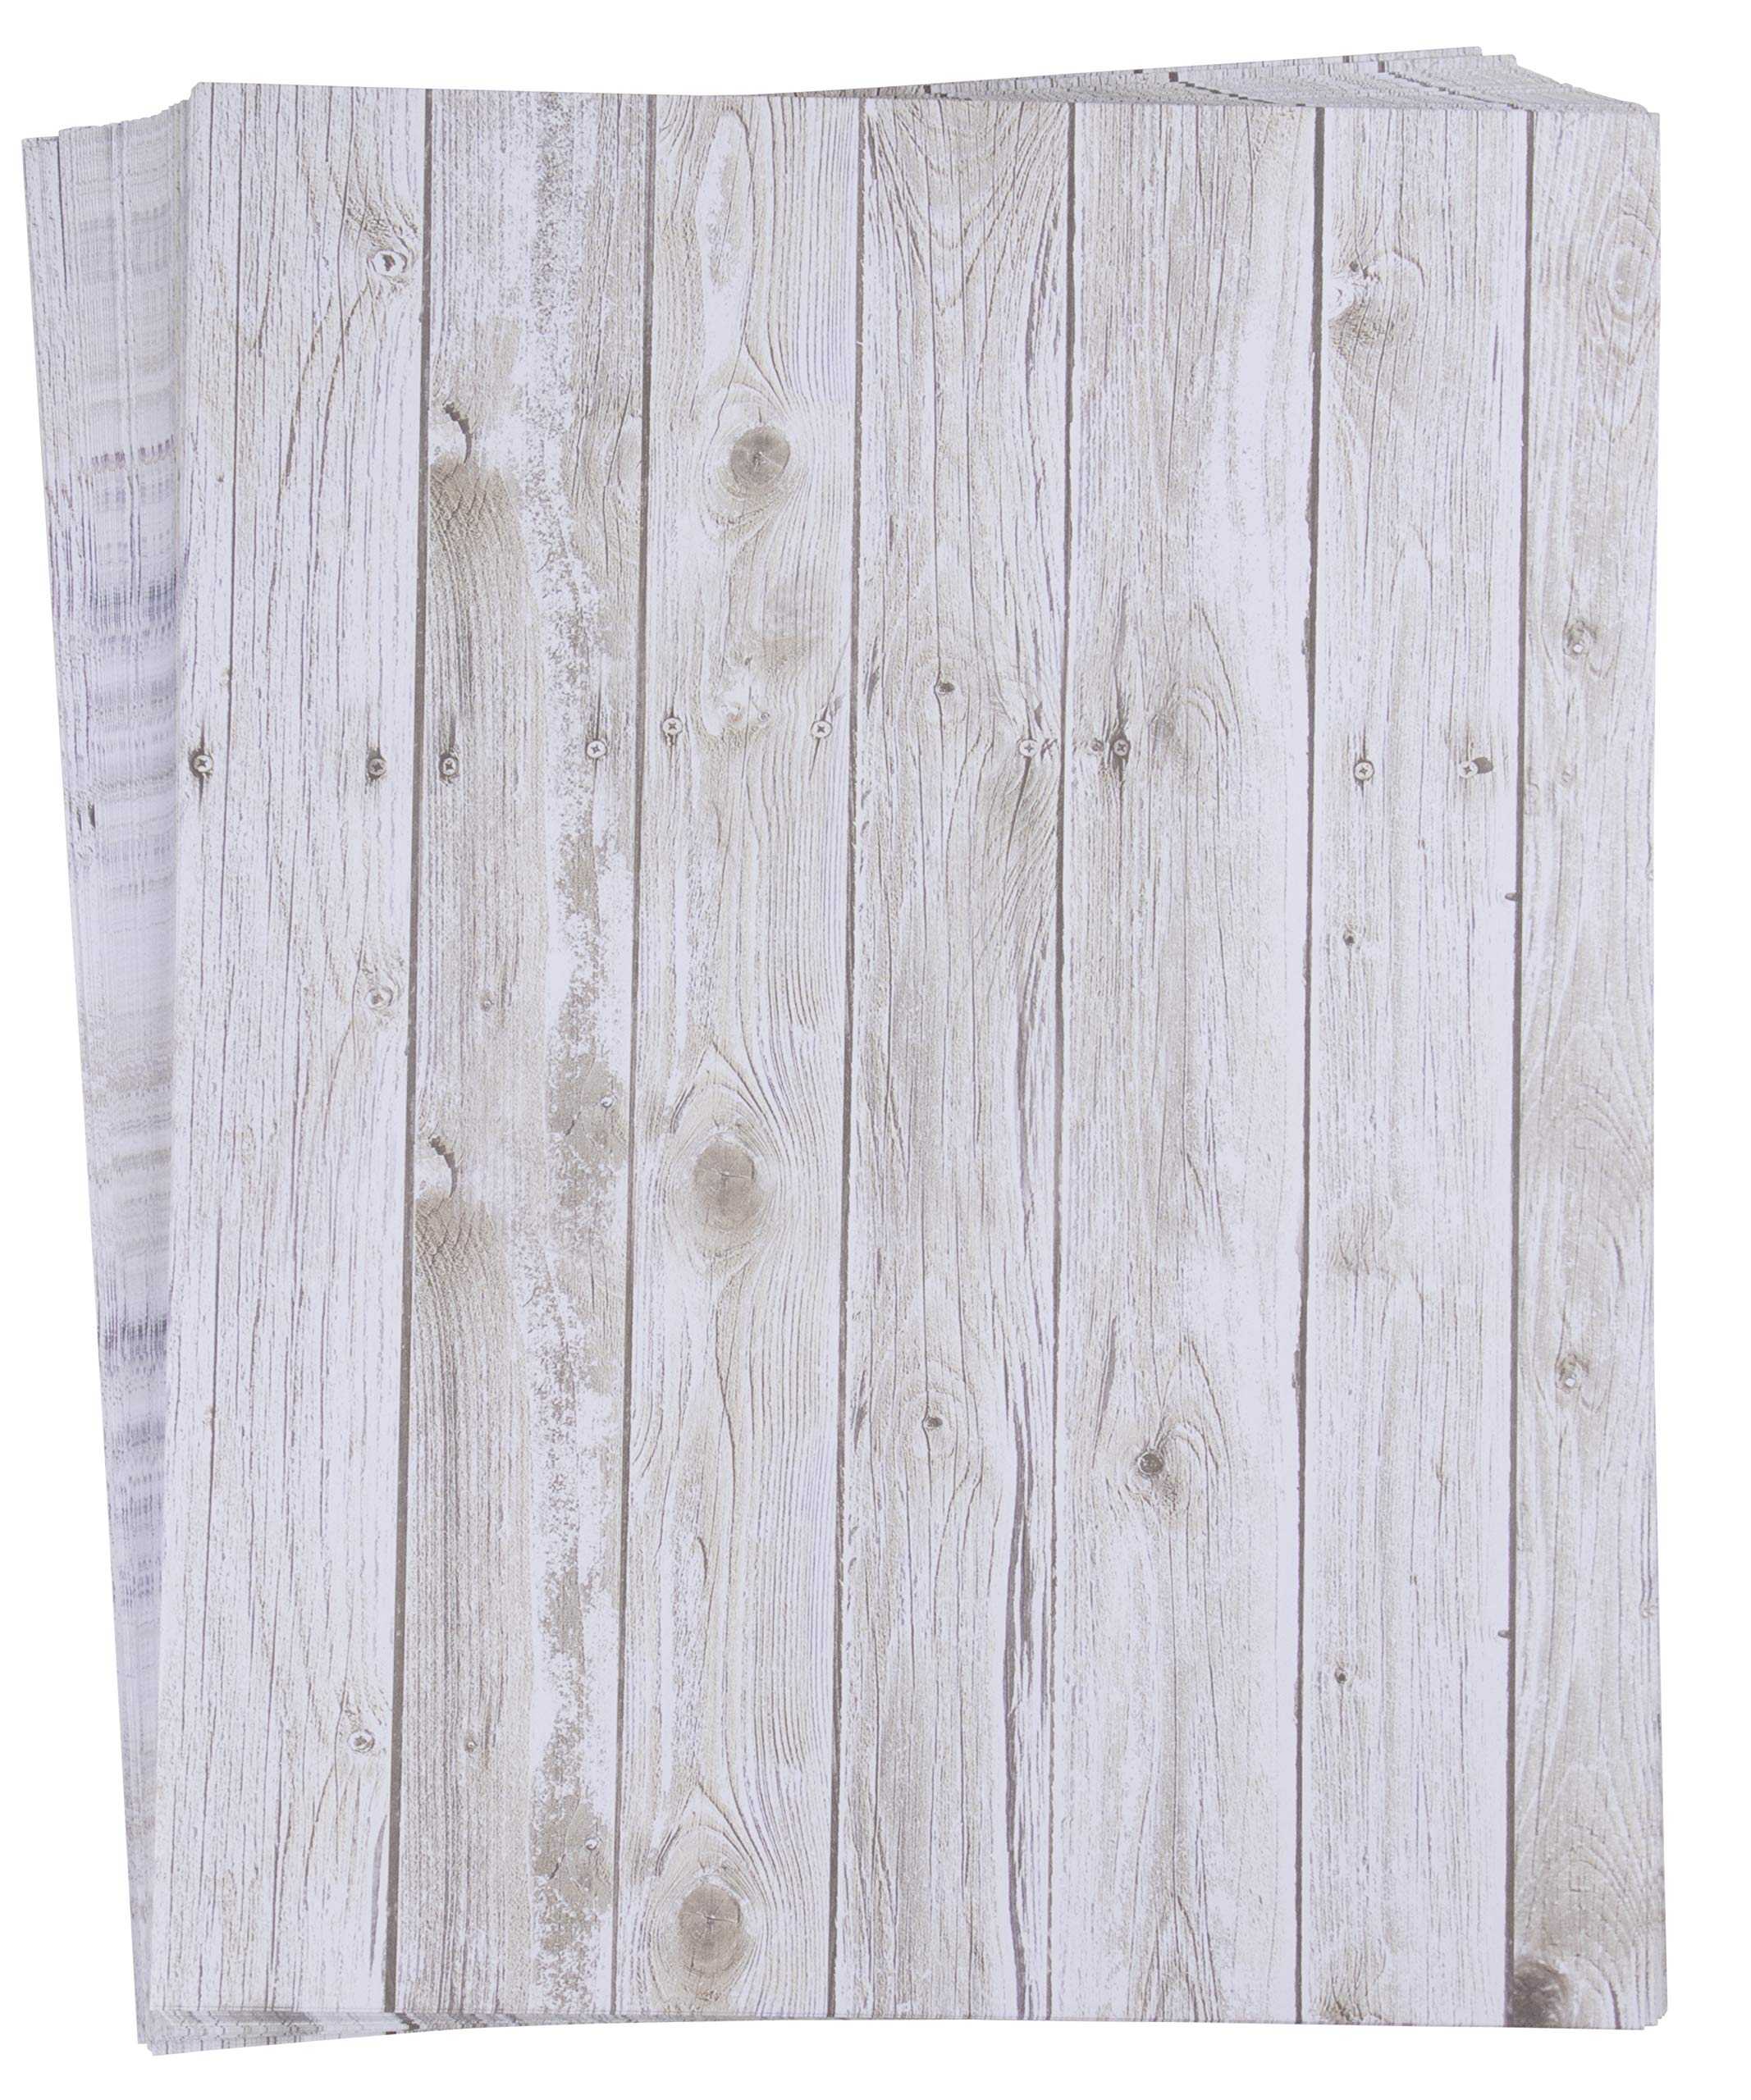 96-Sheet Stationery Paper - Rustic Wood Panel Designs, Double Sided Prints, Perfect for Printing, Copying, Crafting, Letter, Certificate, Invitations, Letter-Size, 8.5 x 11 Inches